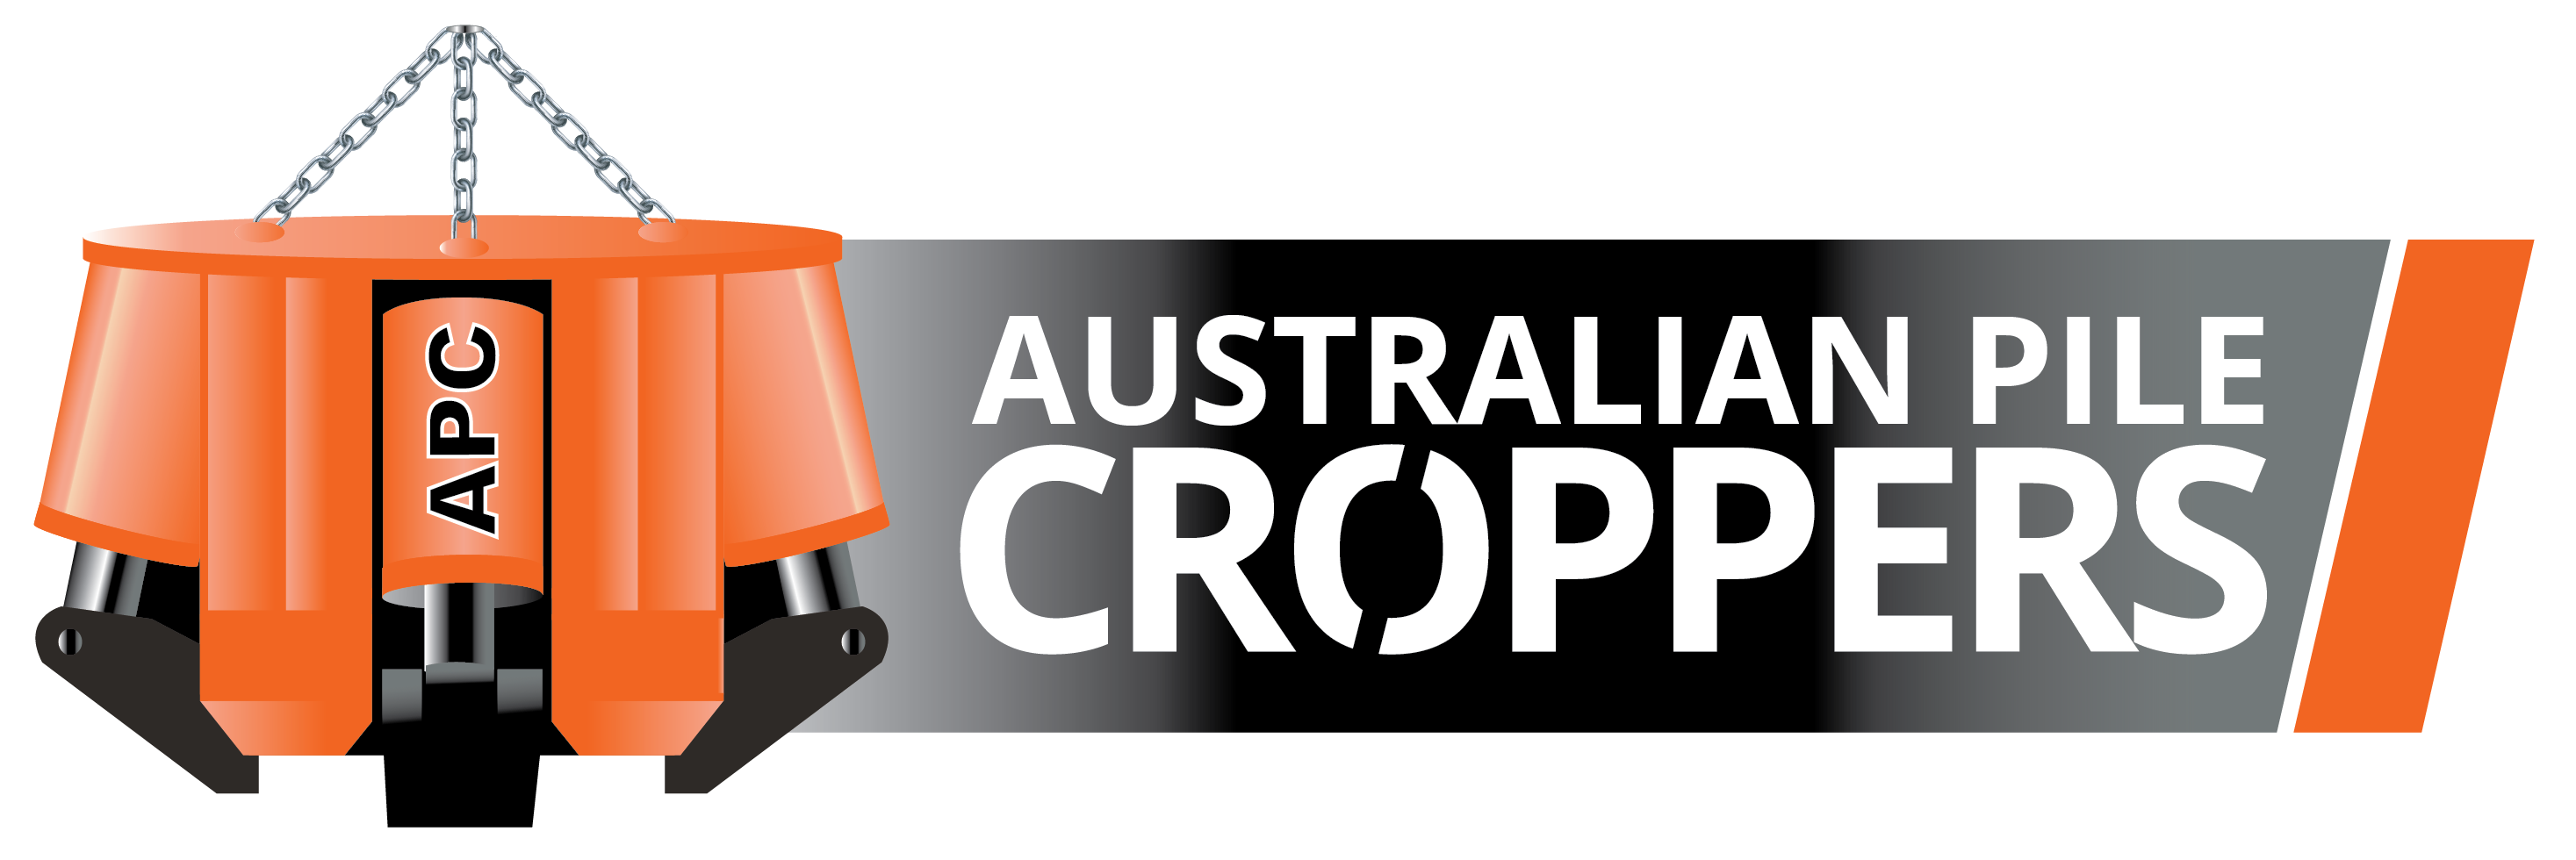 Australian Pile Croppers